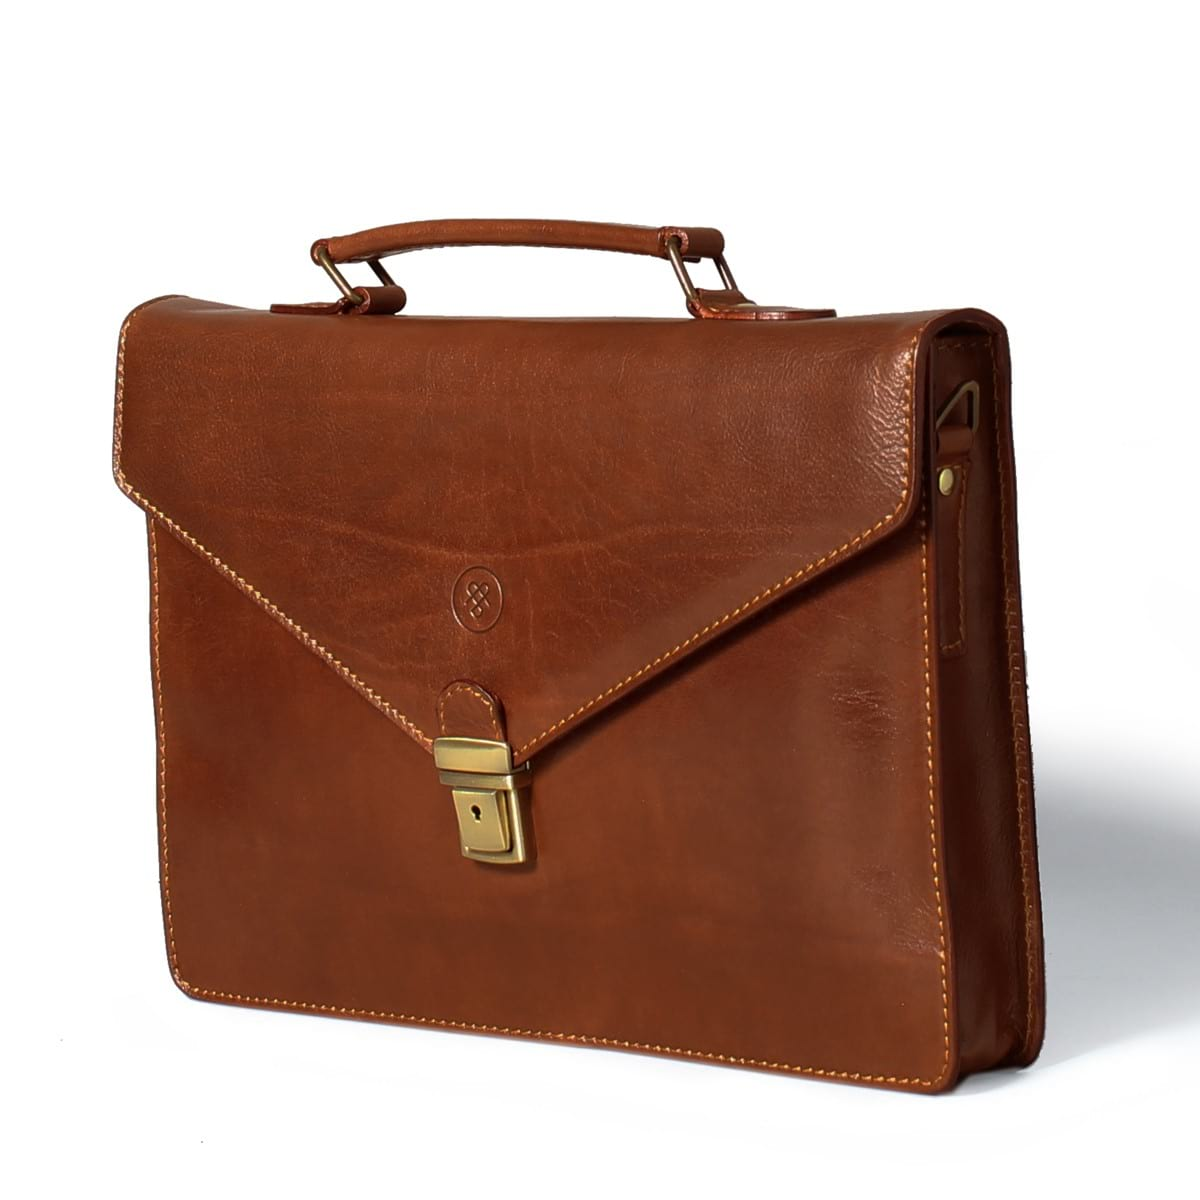 leather briefcase photo - 1